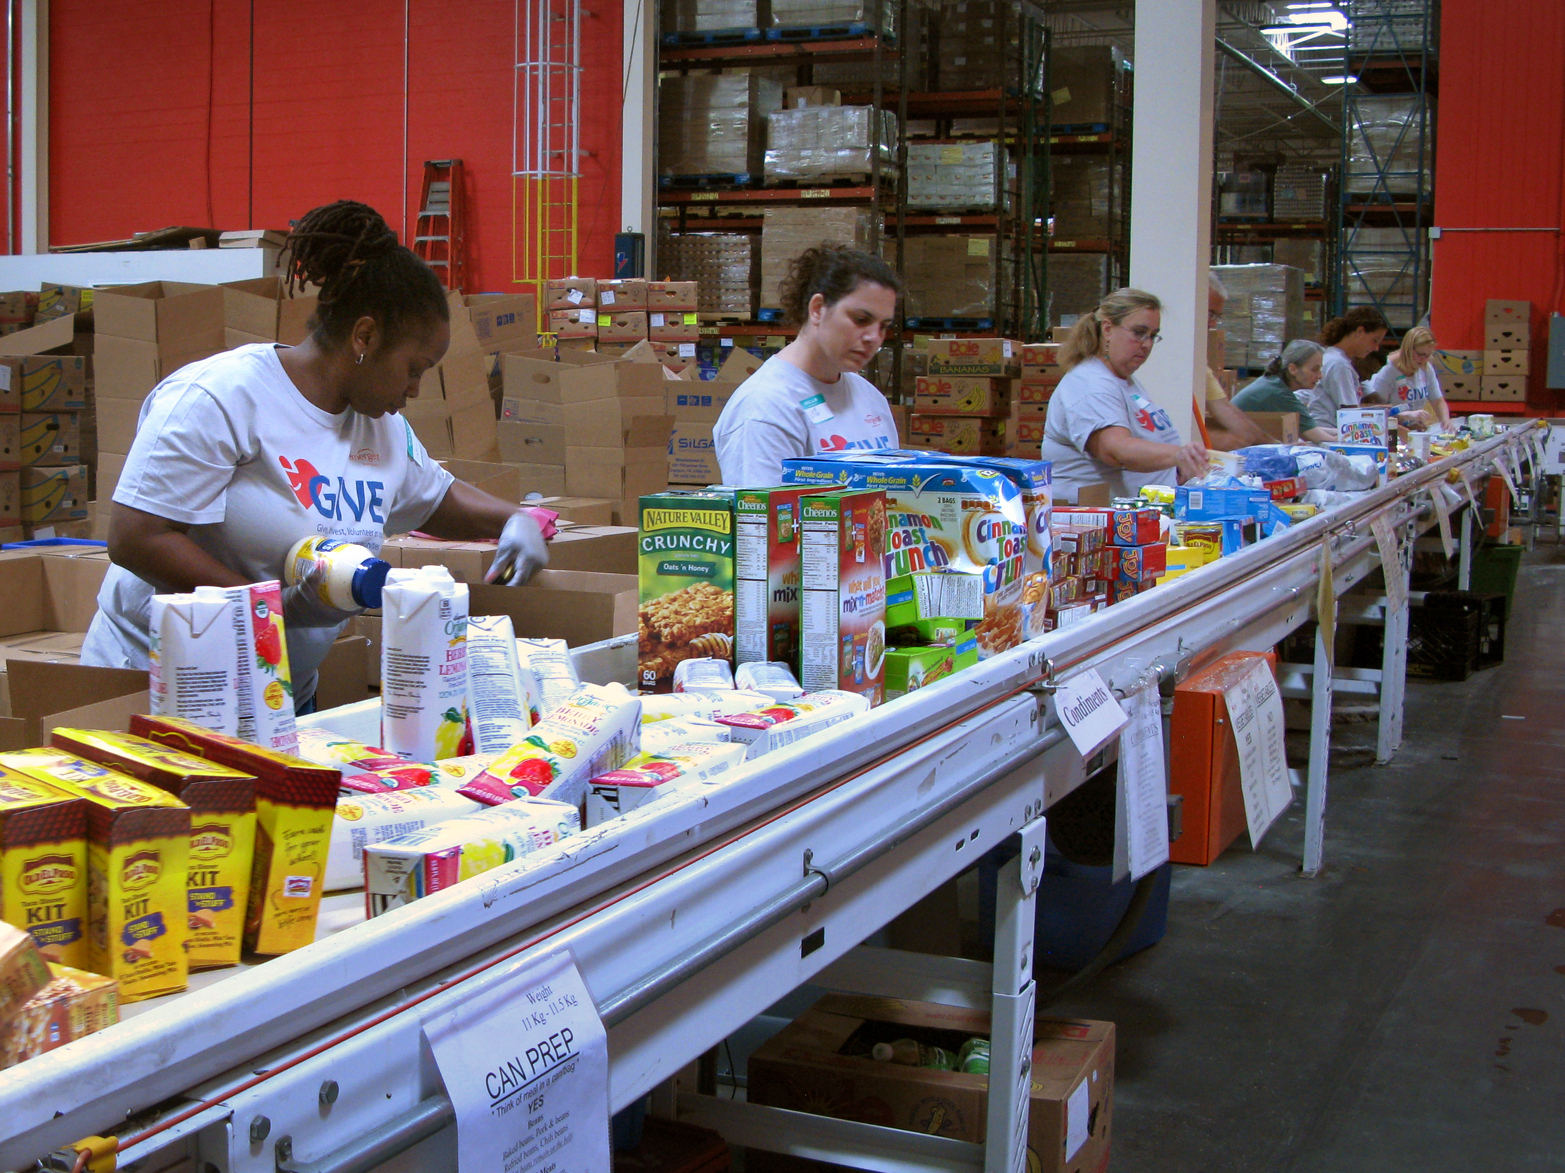 Volunteers at the Maryland Food Bank in Baltimore sort and box food donations on a conveyor belt. The bank started working with groups like the USO in 2013 to provide food aid to families affiliated with nearby military bases. Photo: Pam Fessler/NPR